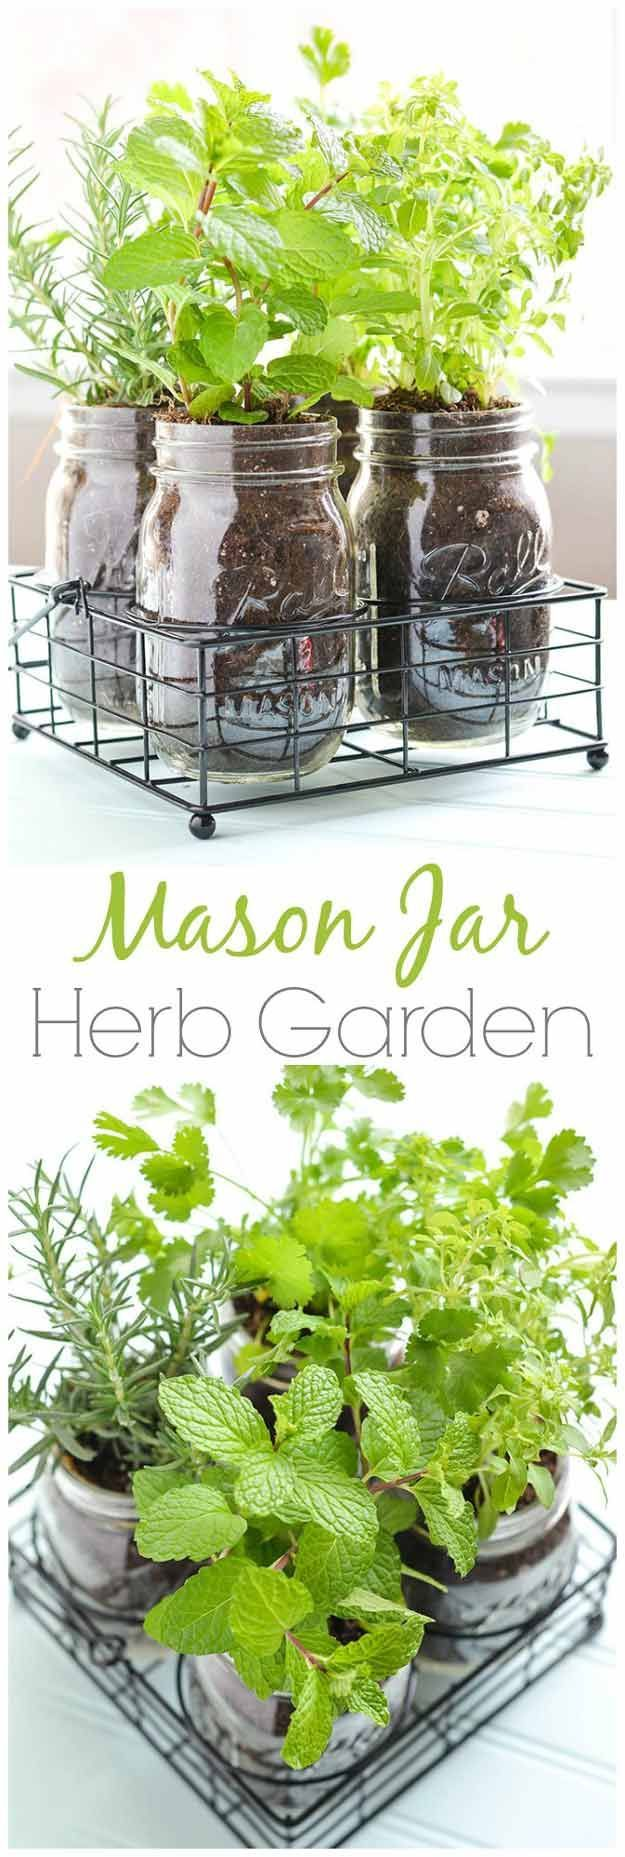 Mason Jar DIY Herb Garden | How To Grow Your Herbs Indoor - Gardening Tips and Ideas by Pioneer Settler at http://pioneersettler.com/indoor-herb-garden-ideas/